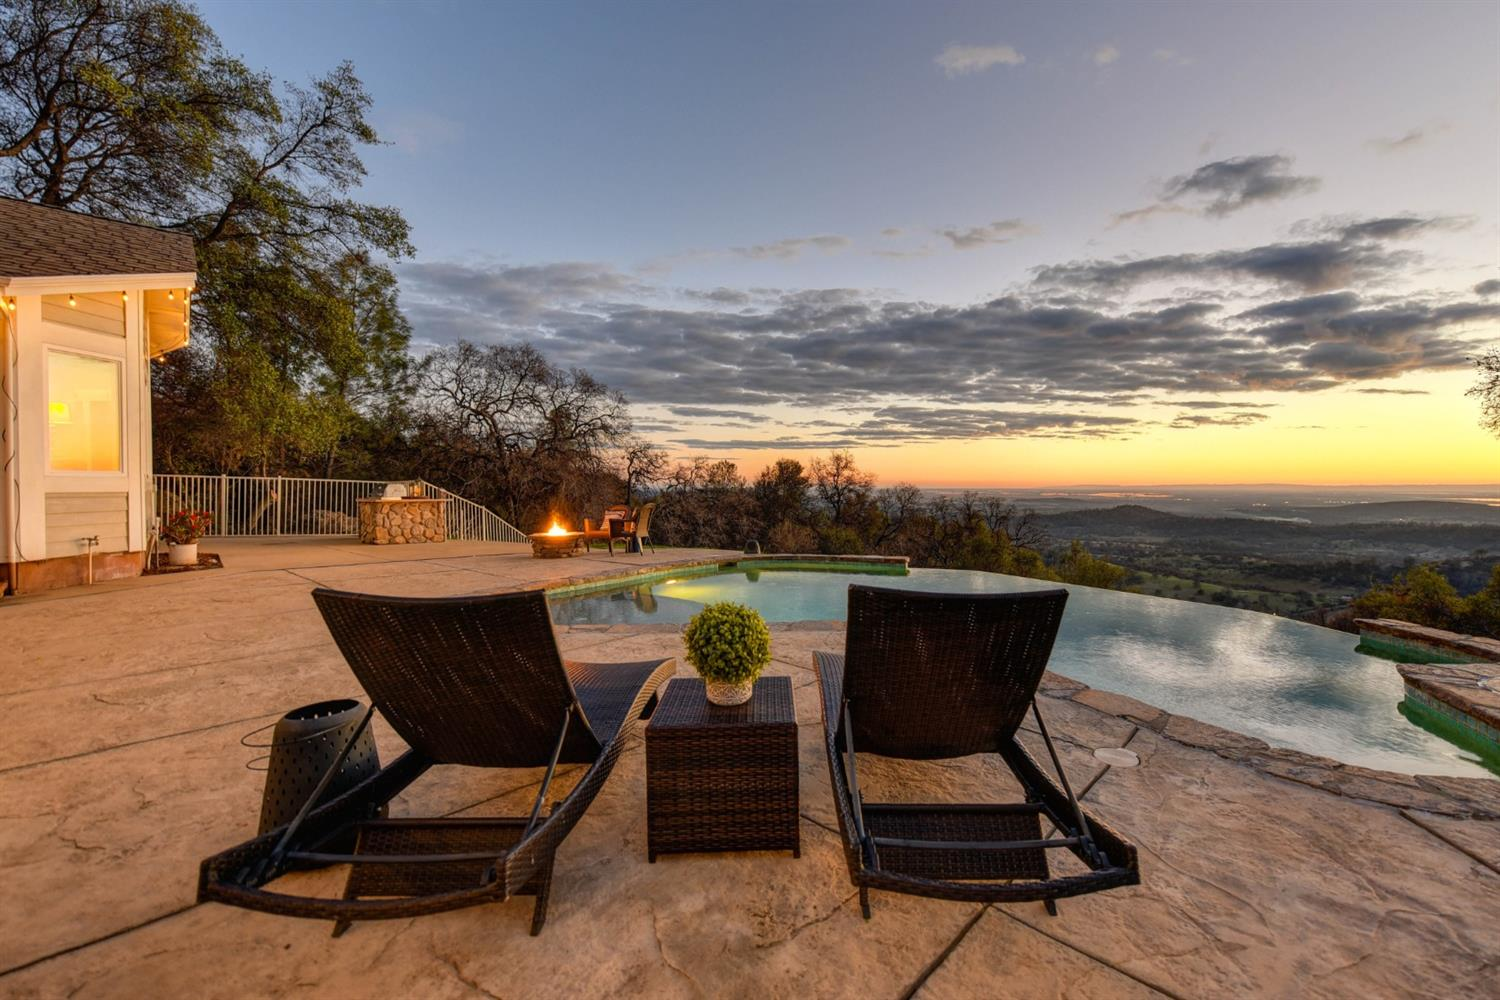 Amazing mountaintop retreat on 20 beautiful acres in Browns Valley! This exquisite getaway has stunning views of the sunset over the Sutter Buttes, Mayacamas Mountains, the Sacramento Valley, and beyond. The custom home is powered by owned solar (and a backup partial house generator) and boasts an open floor plan, remodeled kitchen and bathrooms, and a long list of amenities. The backyard features an infinity edge pool, built-in BBQ, redwood deck, and covered patio, all designed to take in the incredible views. Nestled on the parklike grounds is a greenhouse, garden beds, fruit trees, and a ~2,600 sq. ft. shop with electrical and plumbing for easy conversion to a possible studio living space. The property also has irrigation water available